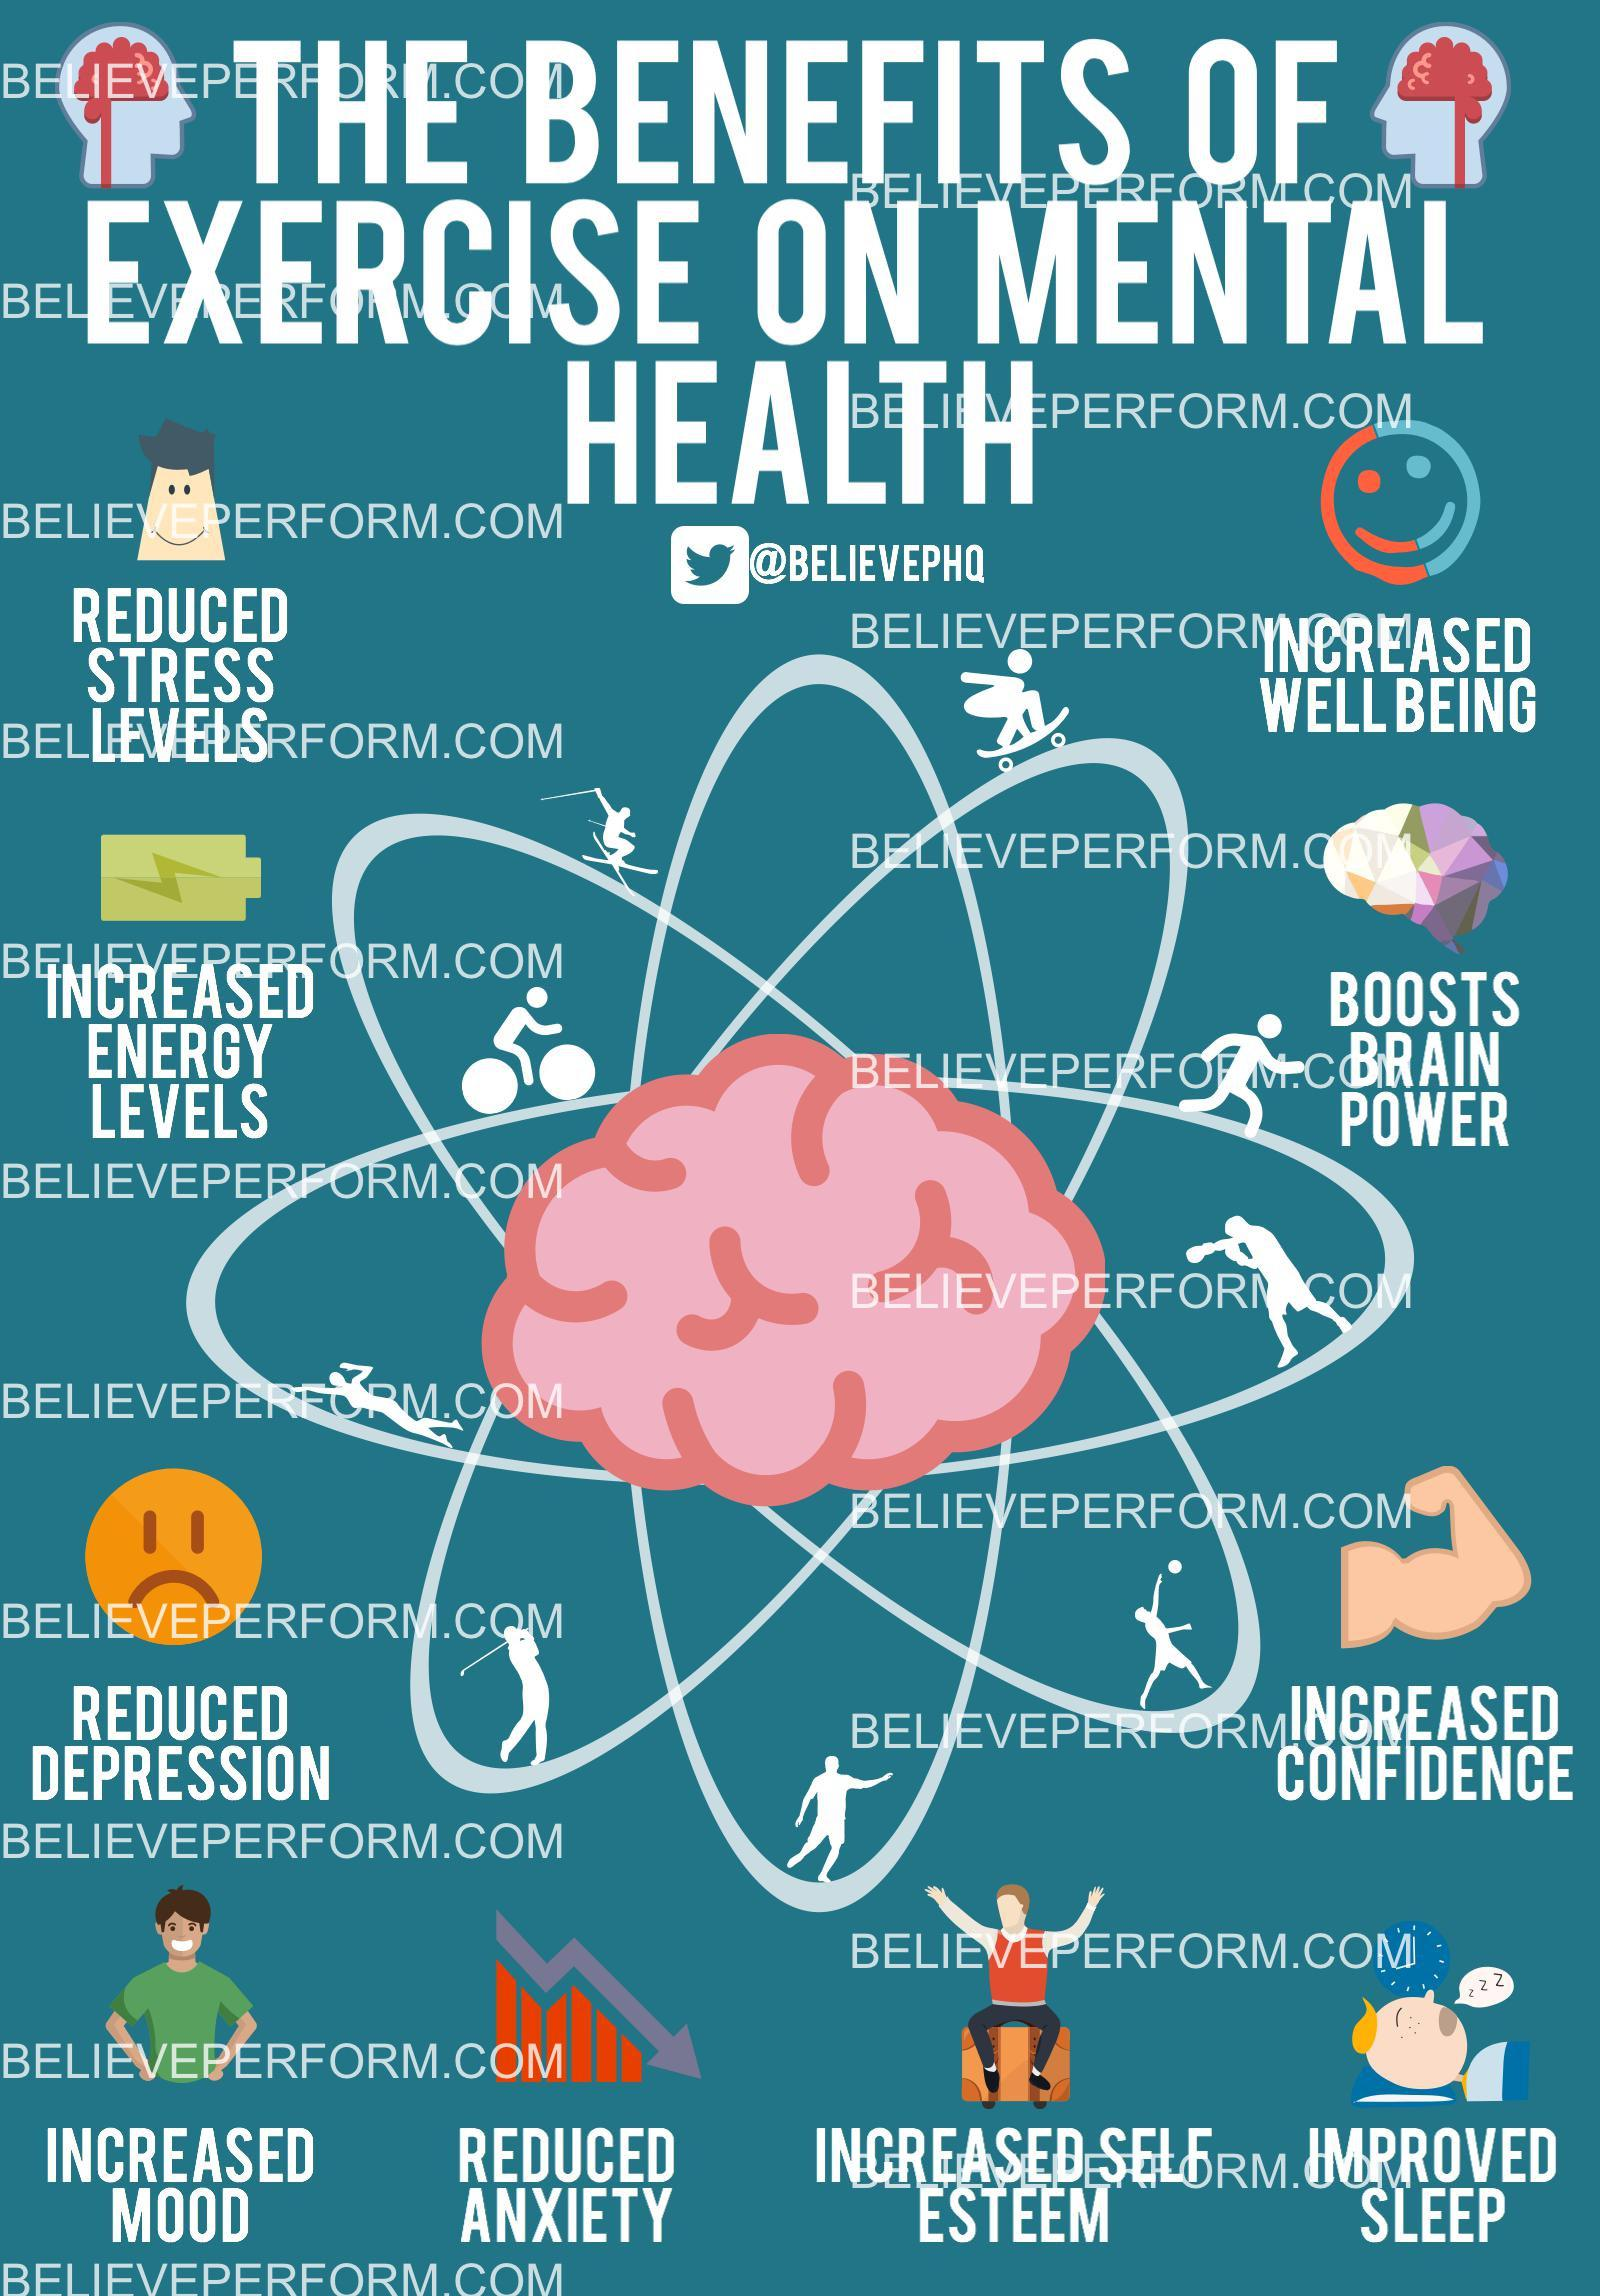 Benefits-exercise-mental-health-1.jpeg